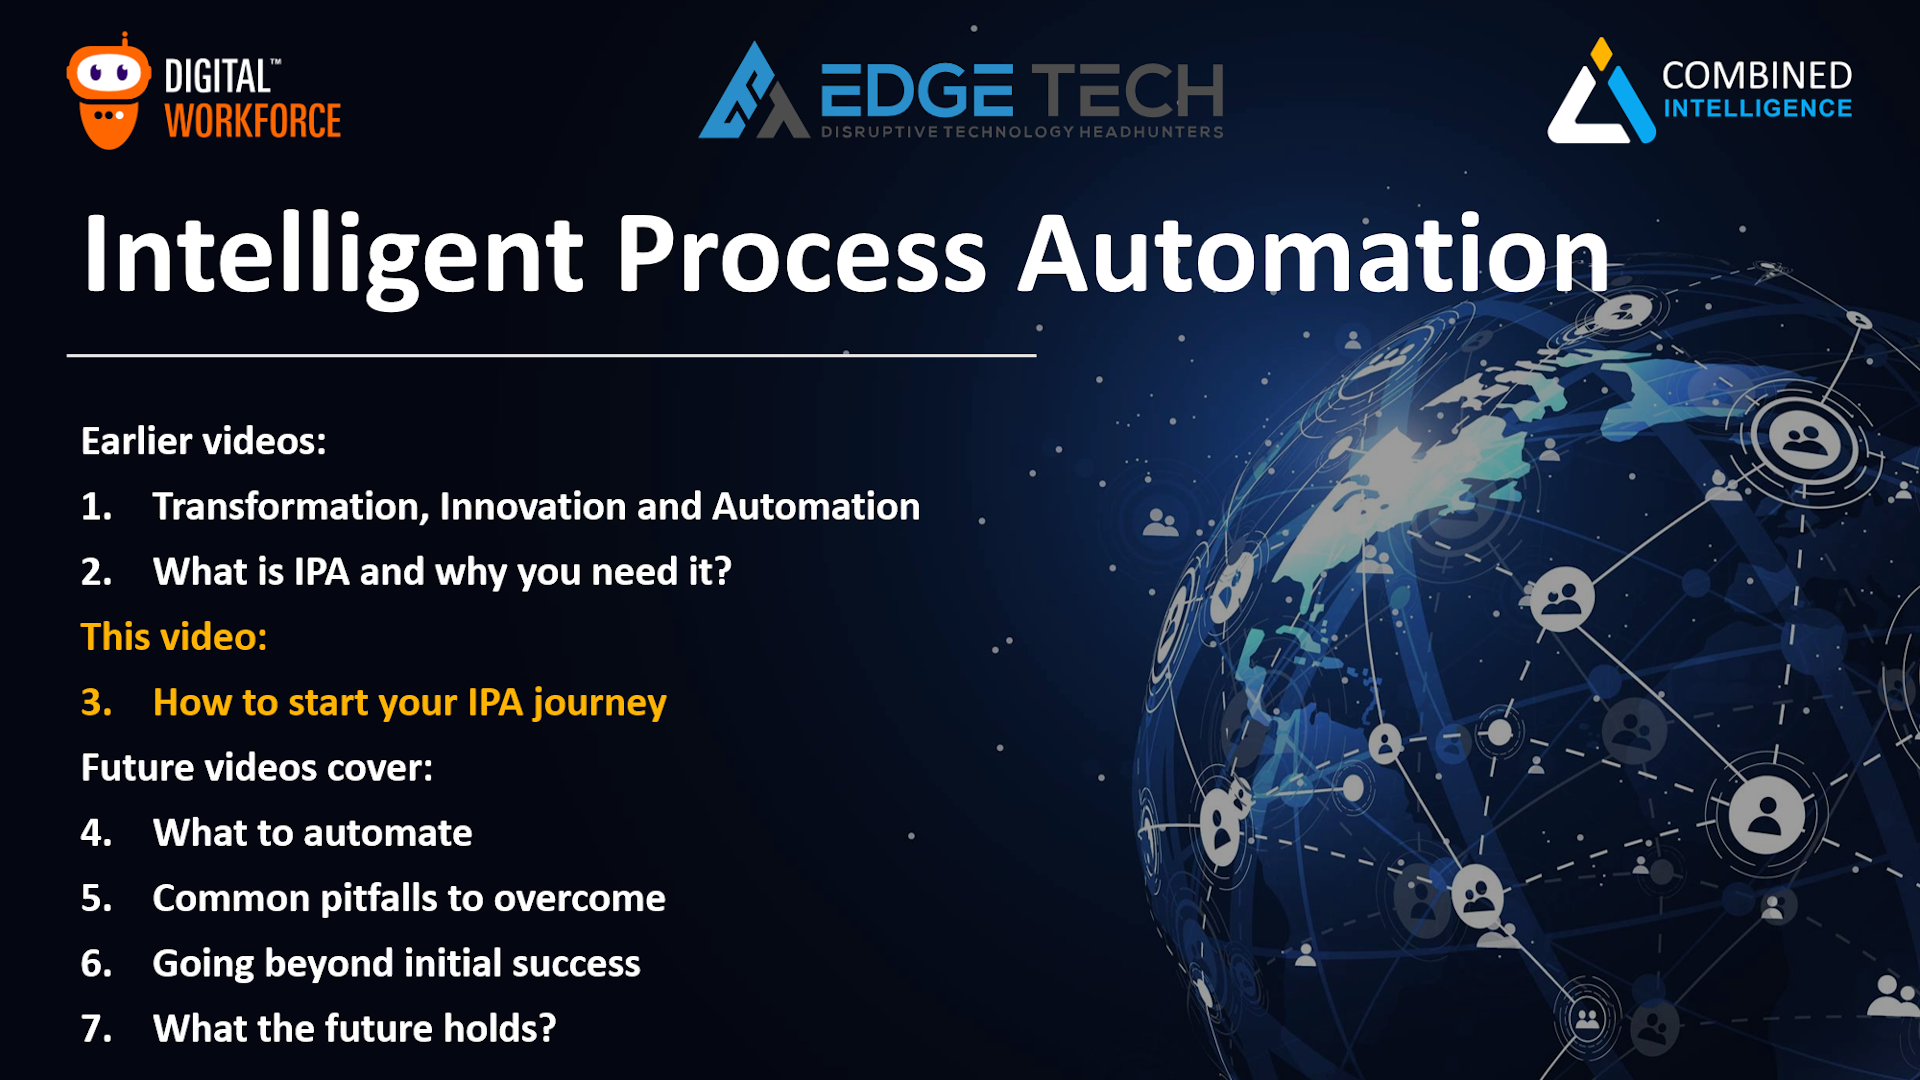 Intelligent Process Automation Video 3 – How to start your Intelligent Process Automation journey